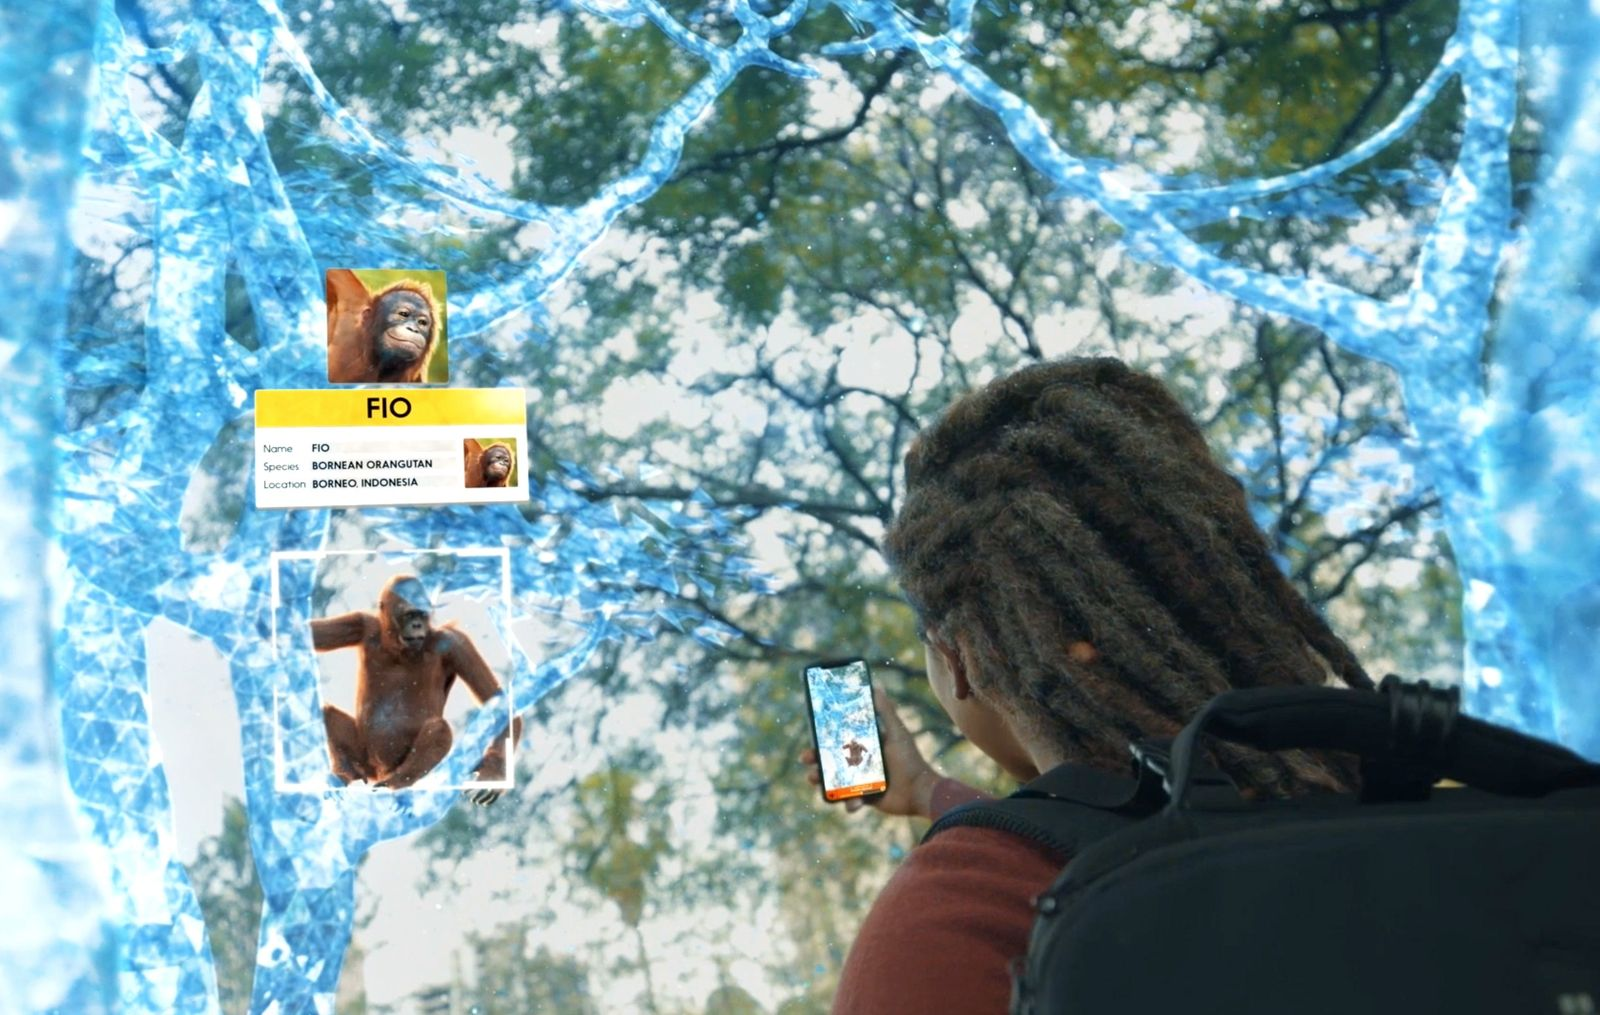 Wildeverse is an augmented reality game that aims to educate its players about threatened species by ...